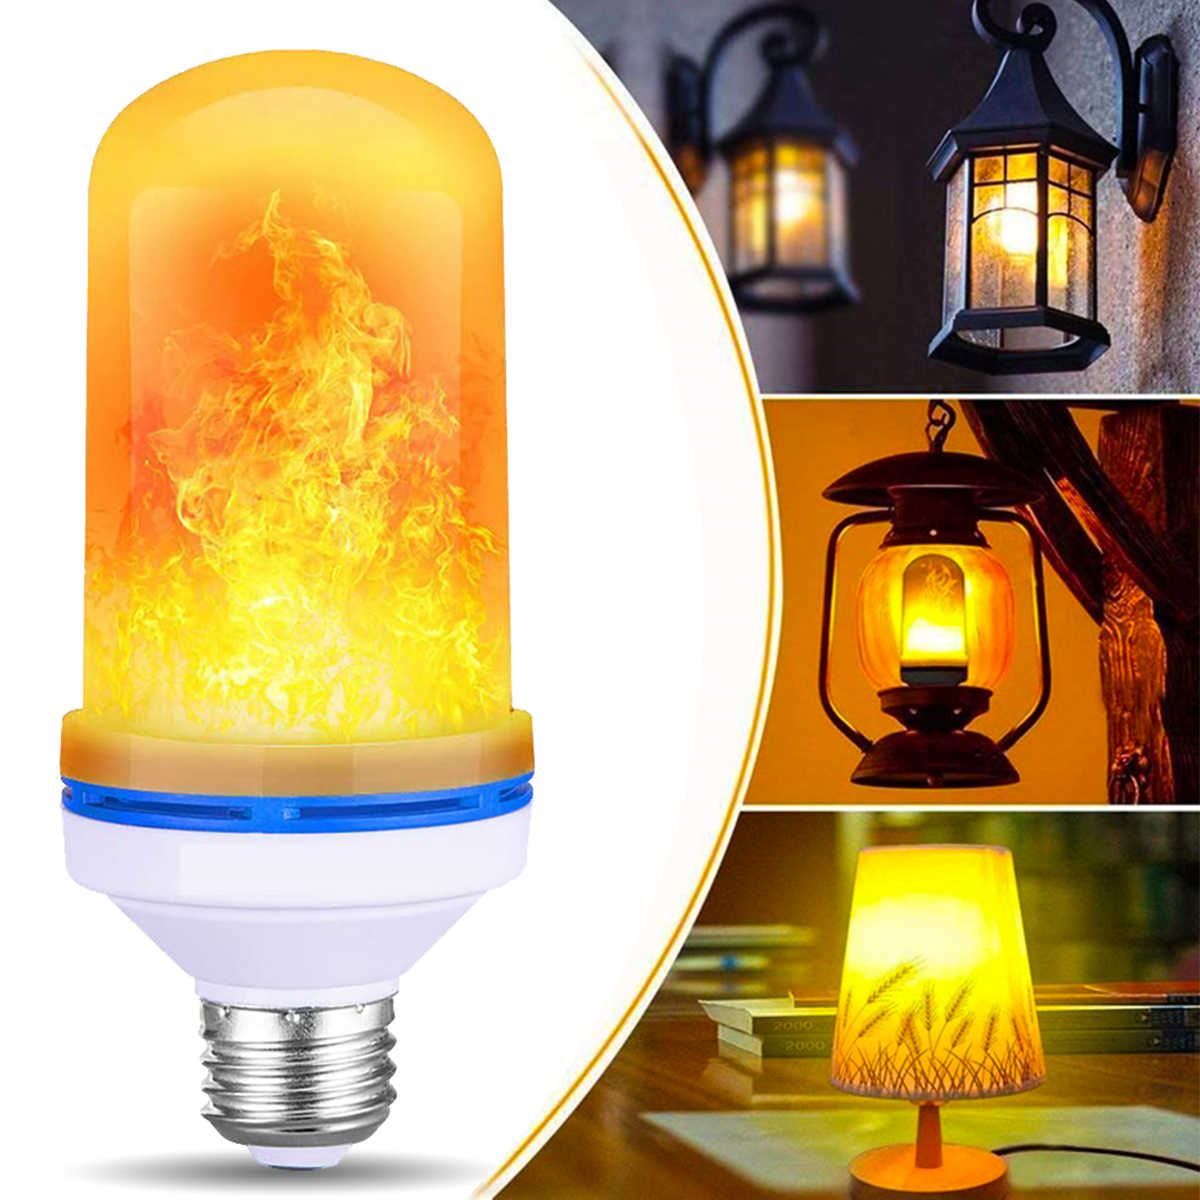 LED Flame Effect Fire Light Bulb E27 base - Upgraded 4 Modes Flickering Fire Holiday Light Halloween Decorations,Home,Festival